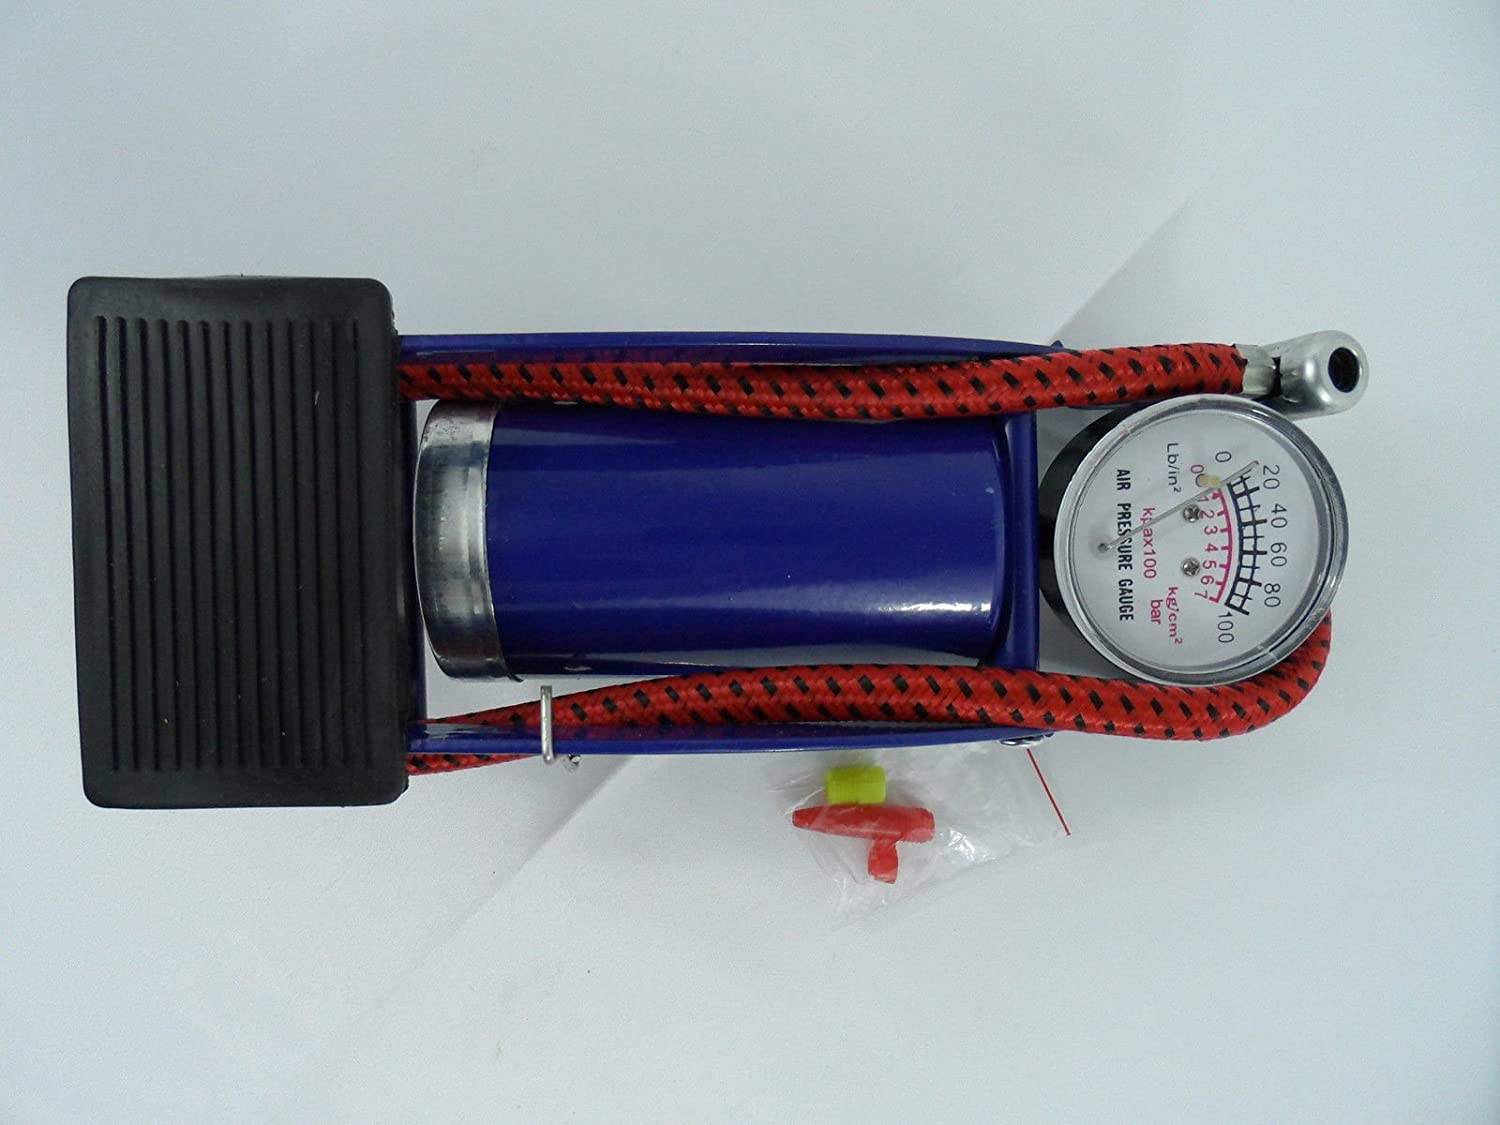 Tire Inflator Air Mattress Foot Operated Air Pump Ball Bike Bicycle with Gauge